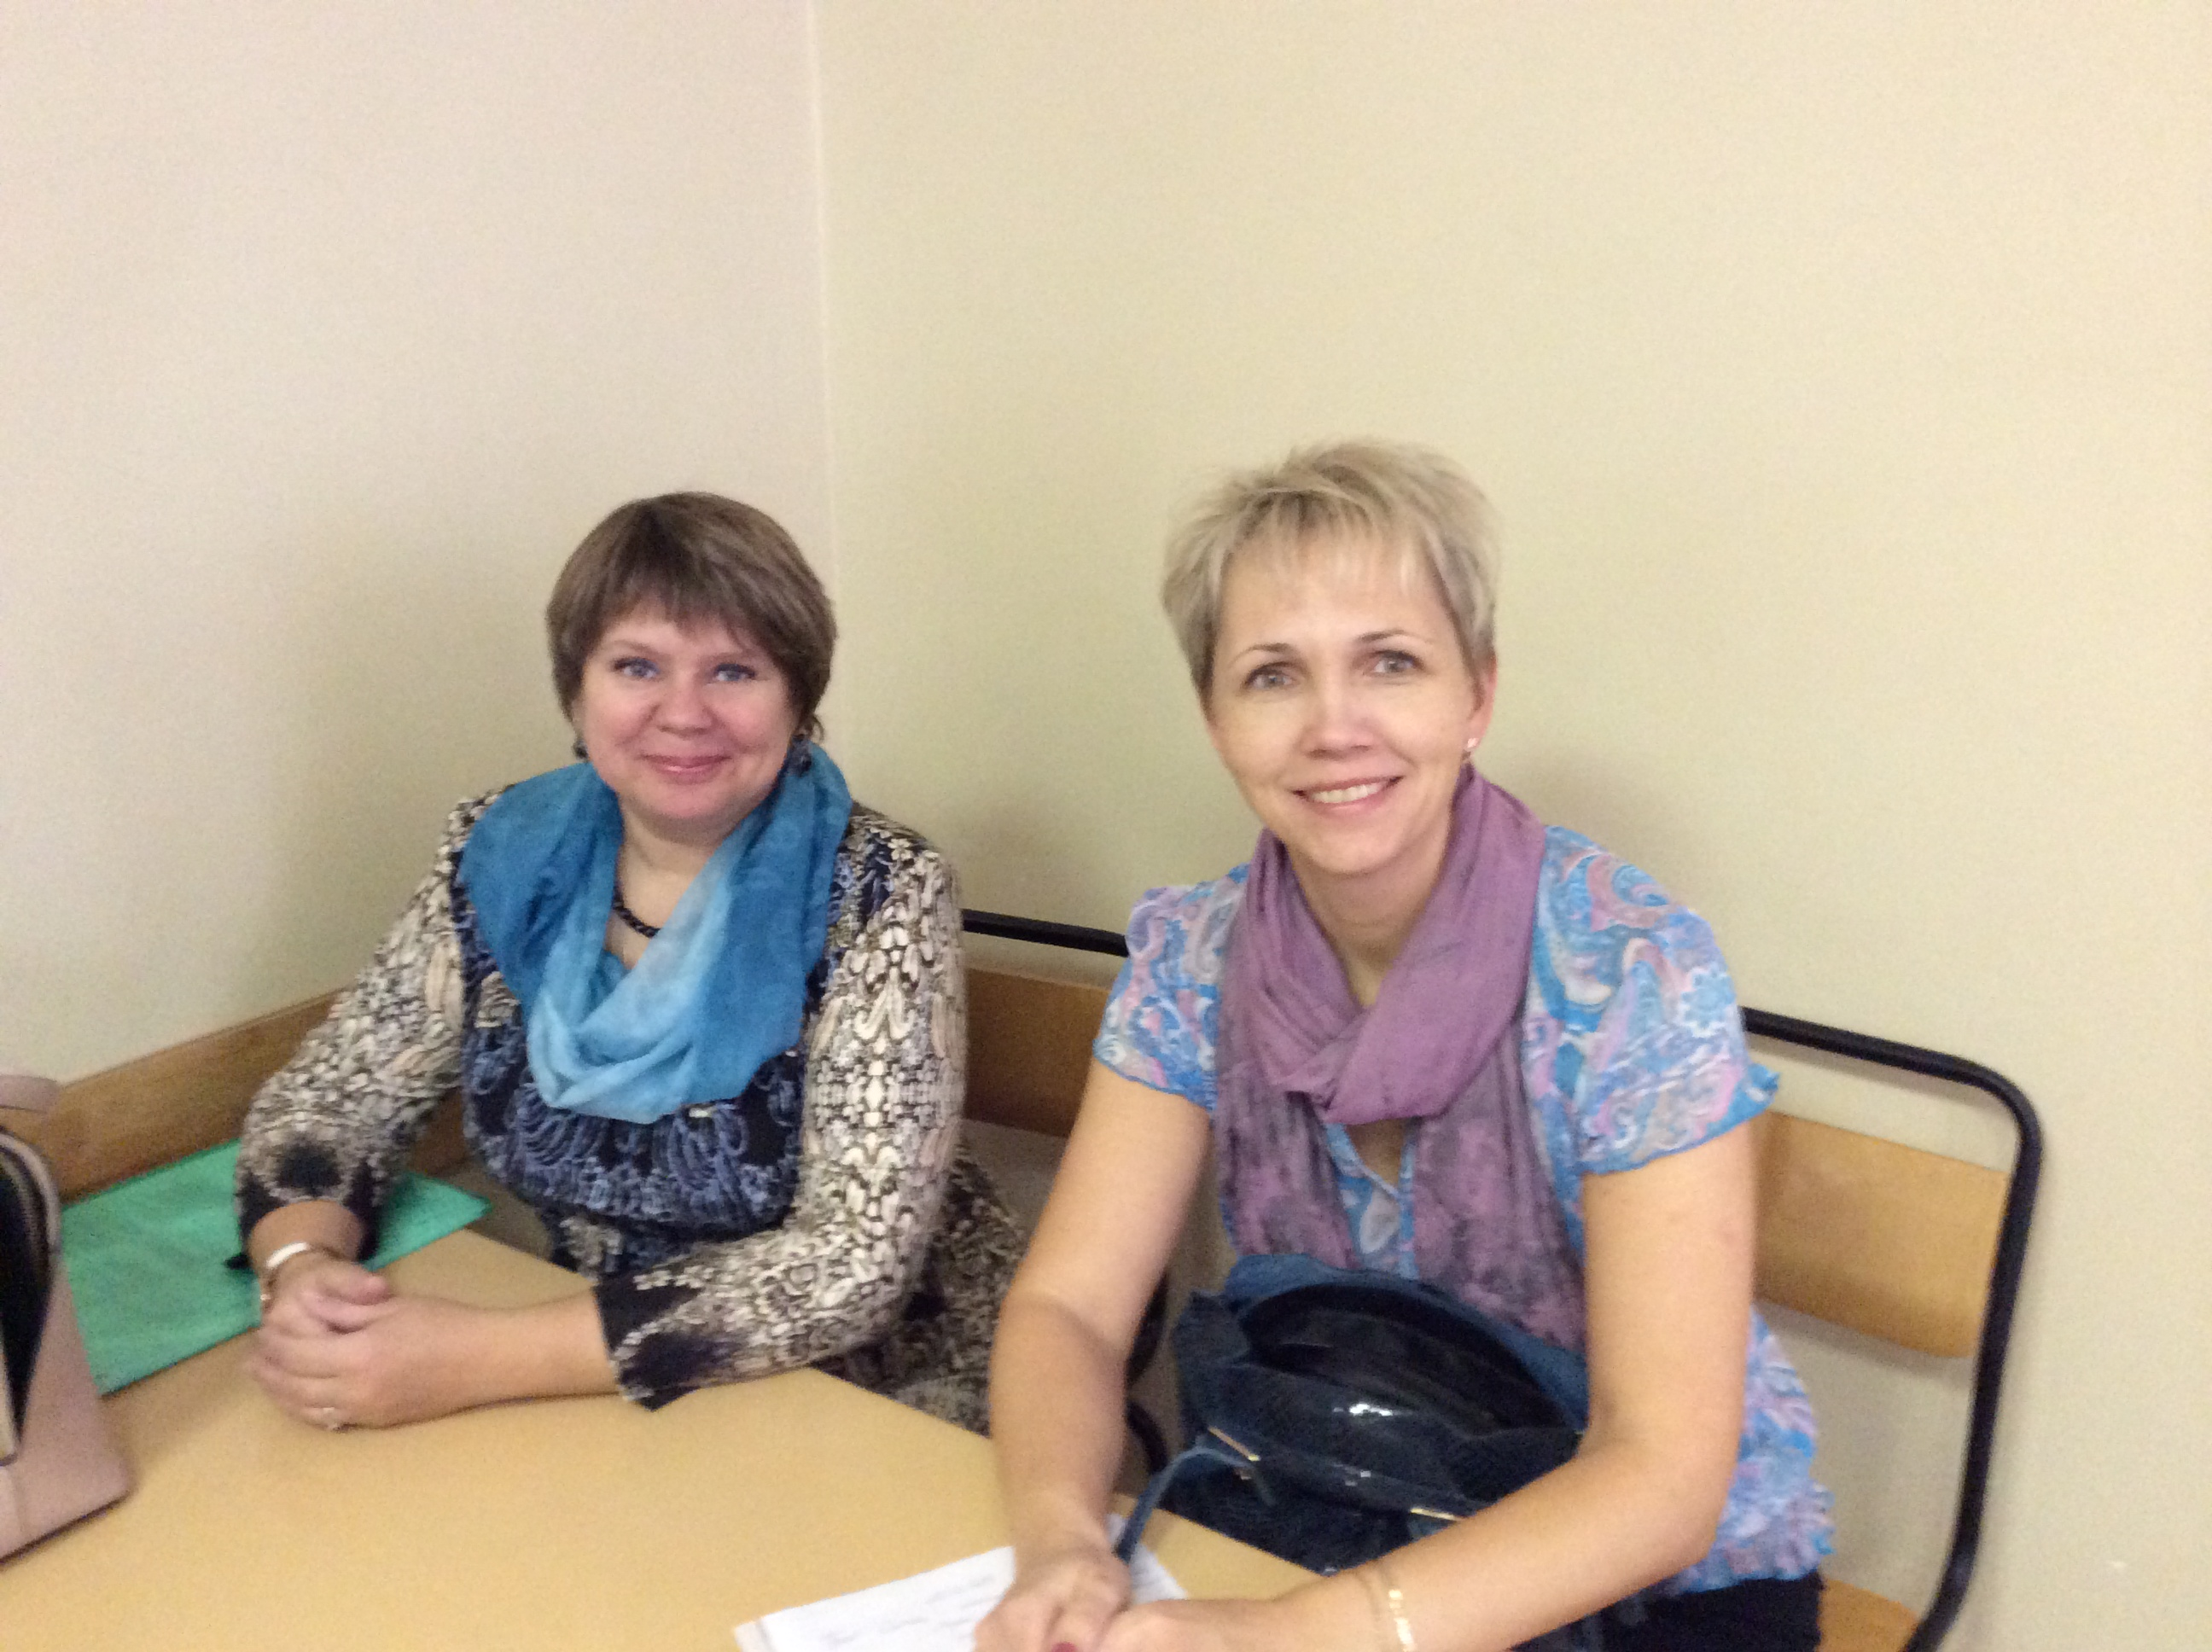 Russian P2P leaders-Olga Klevina and Elena Malysheva